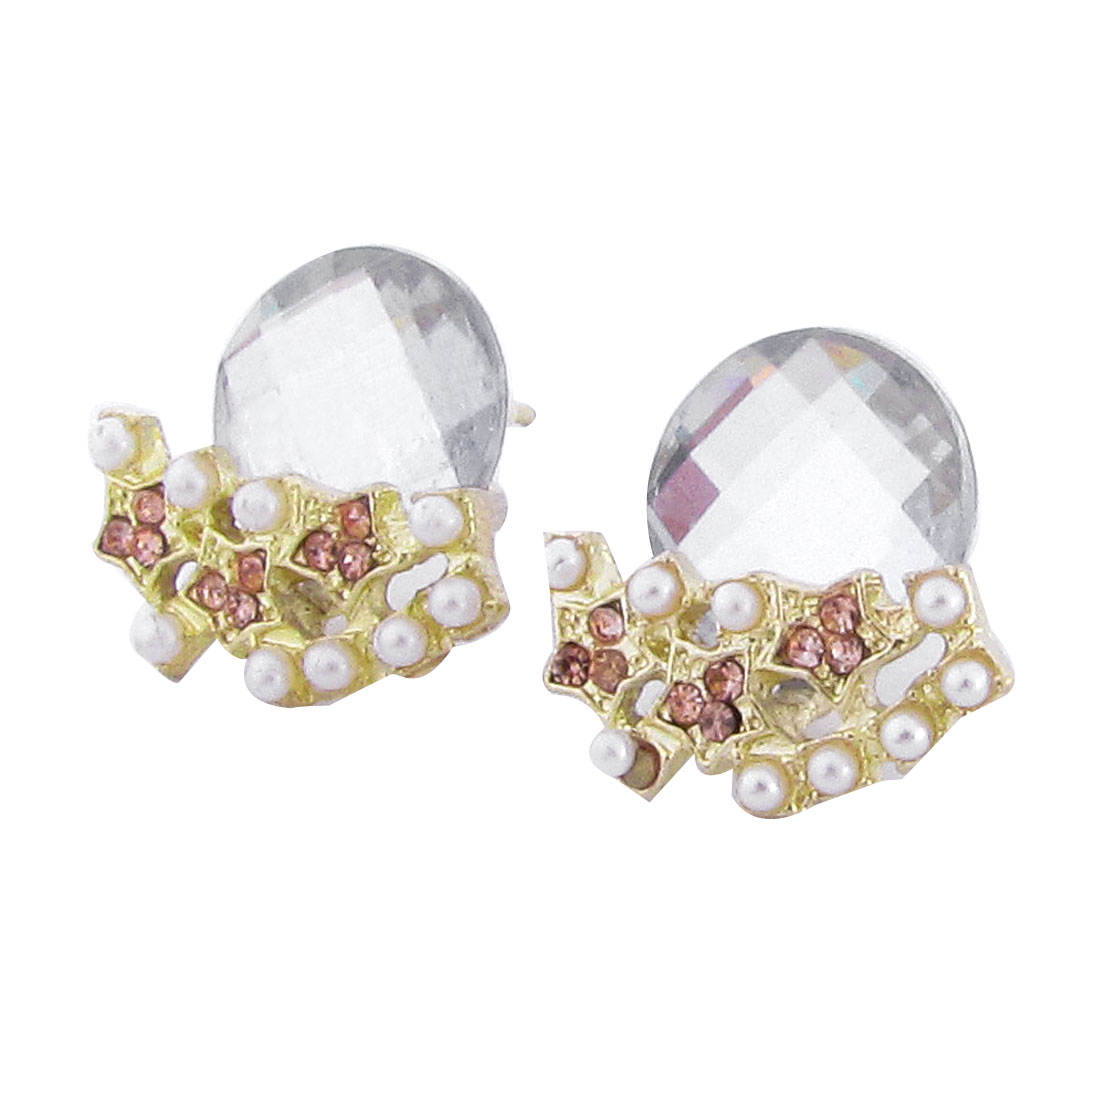 Lady Ear Ornament Gold Tone Clear Faceted Crystal Detailing Stud Earrings Pair